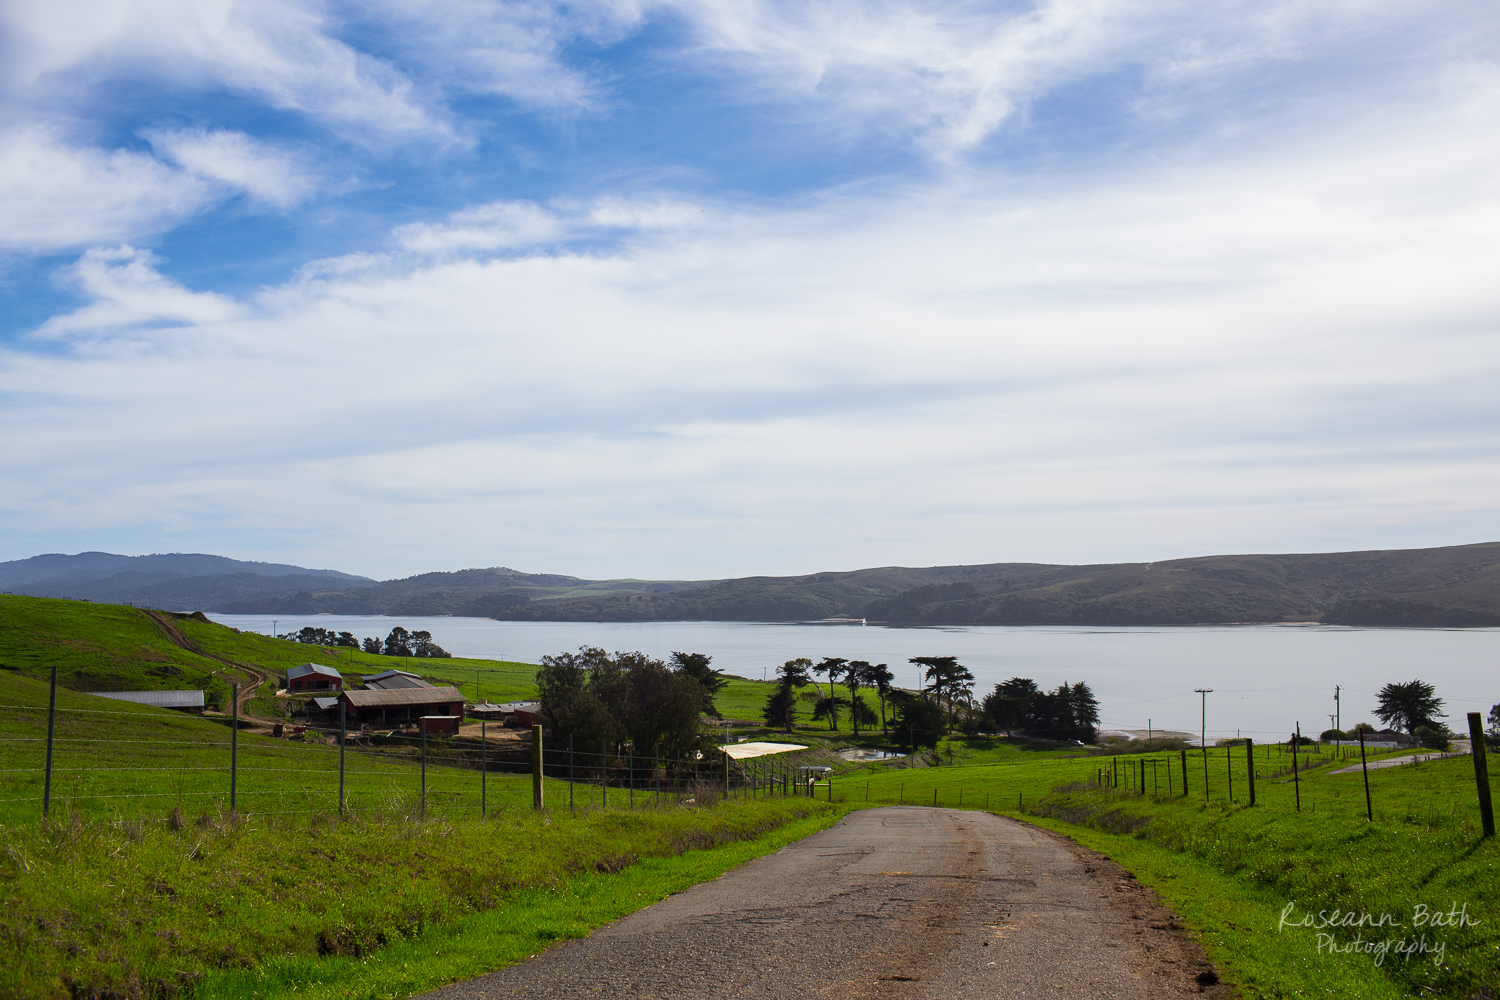 Tomales Bay from Clark Road, Marshall CA